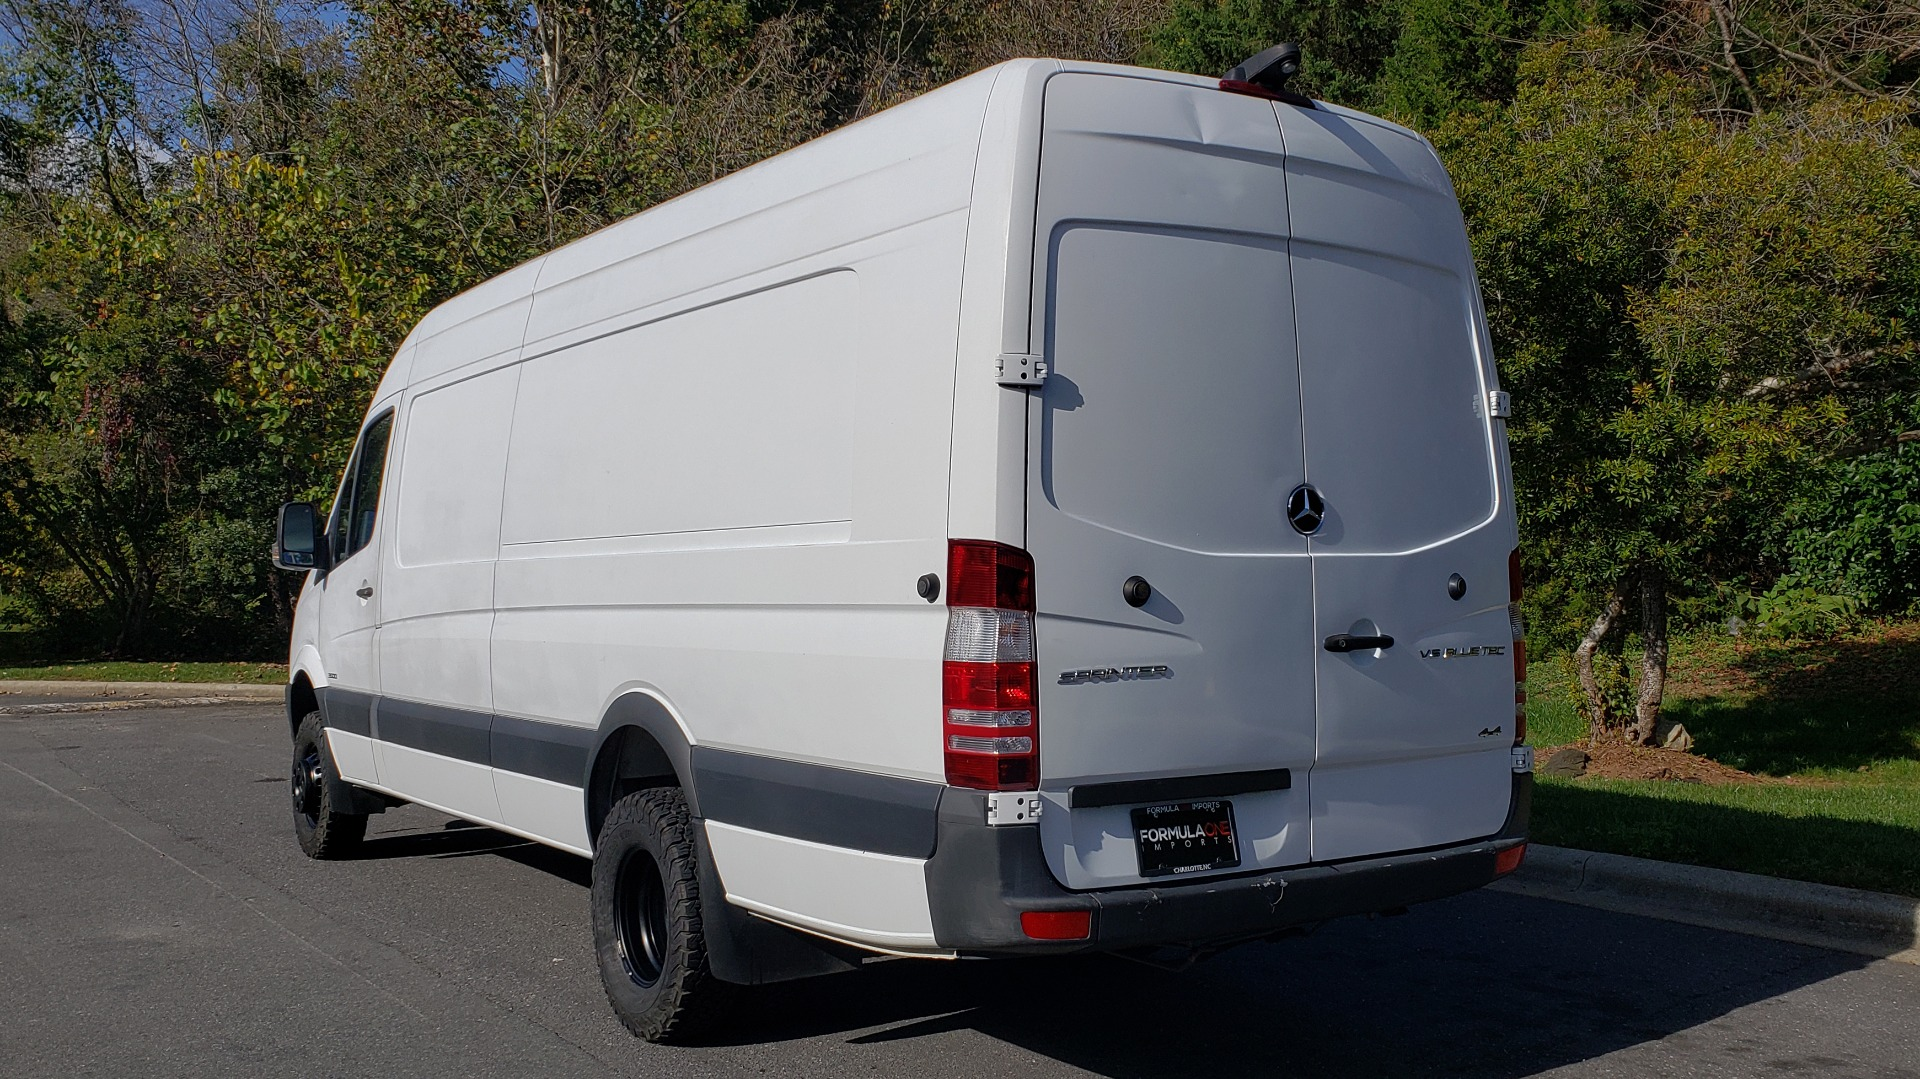 Used 2015 Mercedes-Benz SPRINTER CARGO VAN 4x4 3500 170 EXT / 3.0L V6 TURBO DIESEL / 5-SPD AUTO / REARVIEW for sale Sold at Formula Imports in Charlotte NC 28227 3